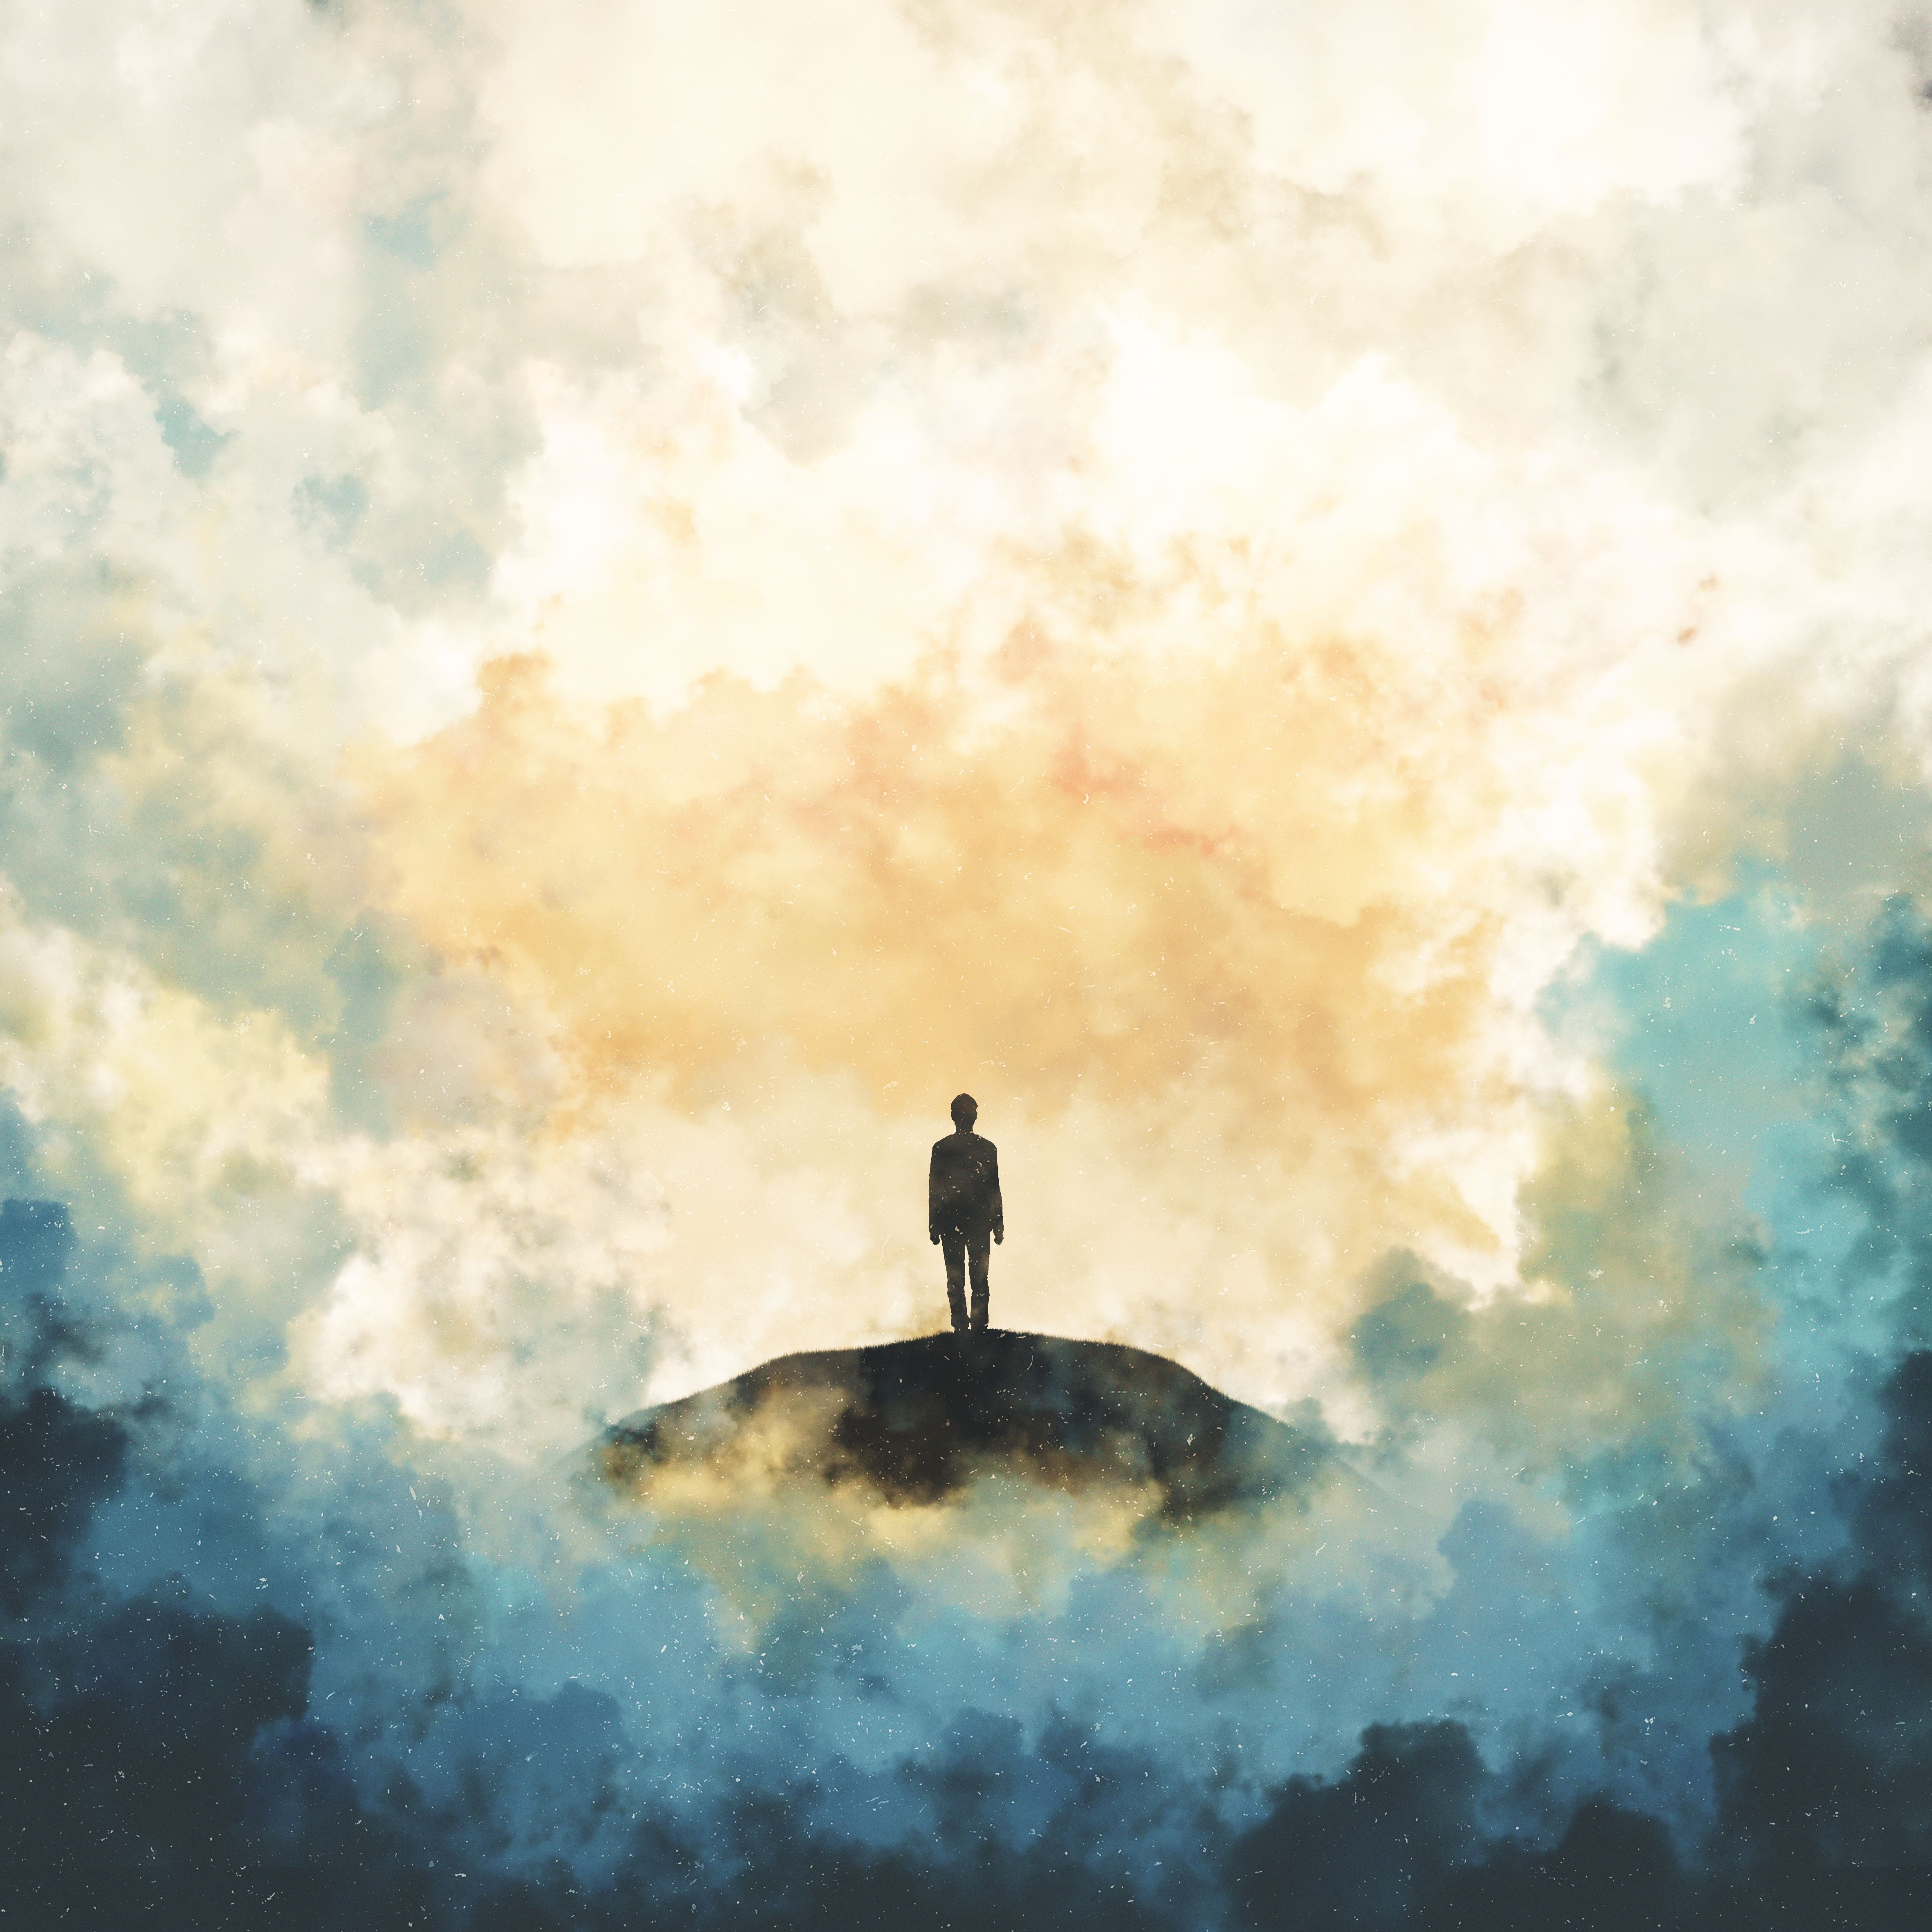 156302 download wallpaper Silhouette, Art, Sky, Loneliness, Alone, Lonely screensavers and pictures for free